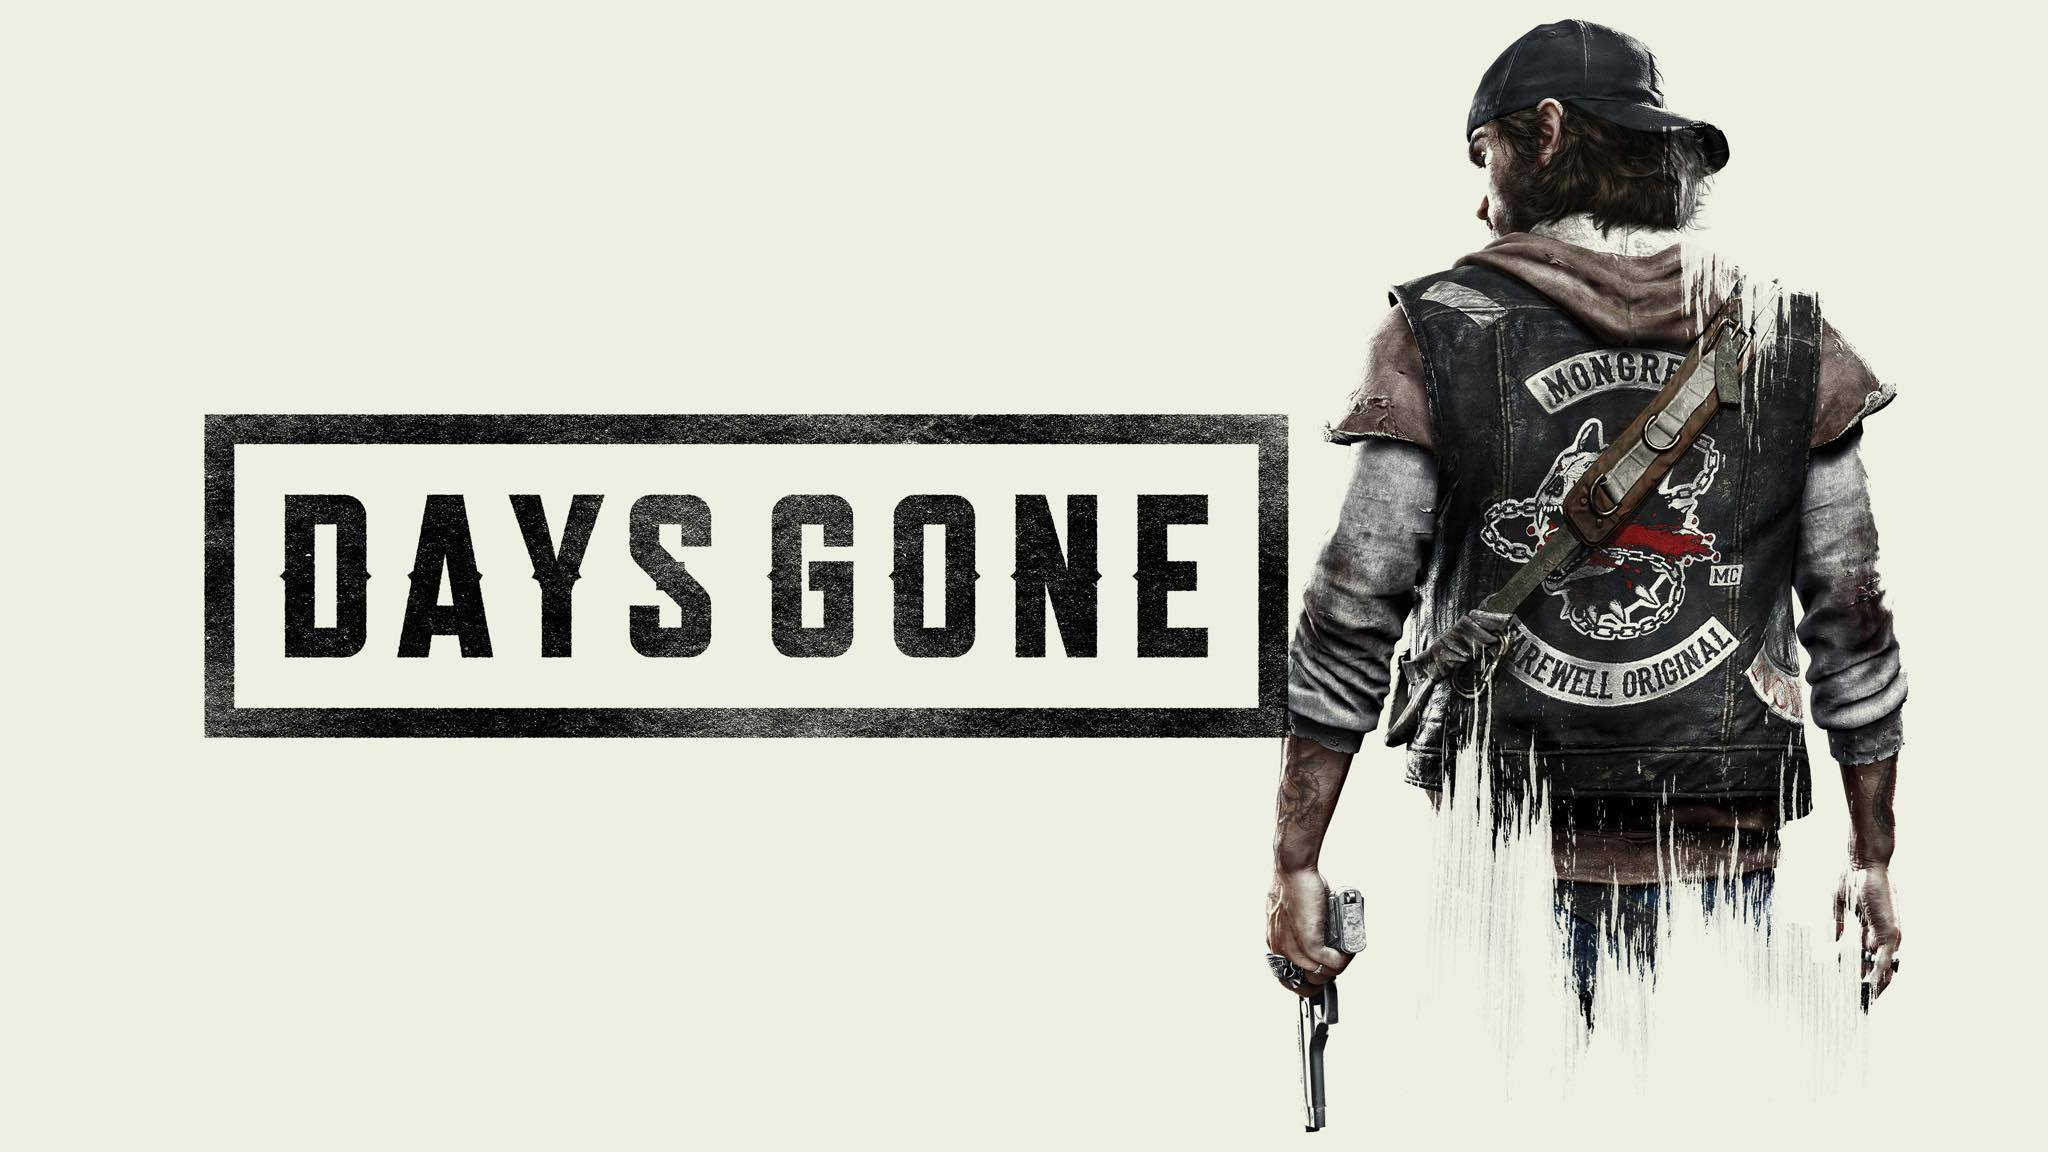 Days Gone: ¿Una expansión de The Last of Us?